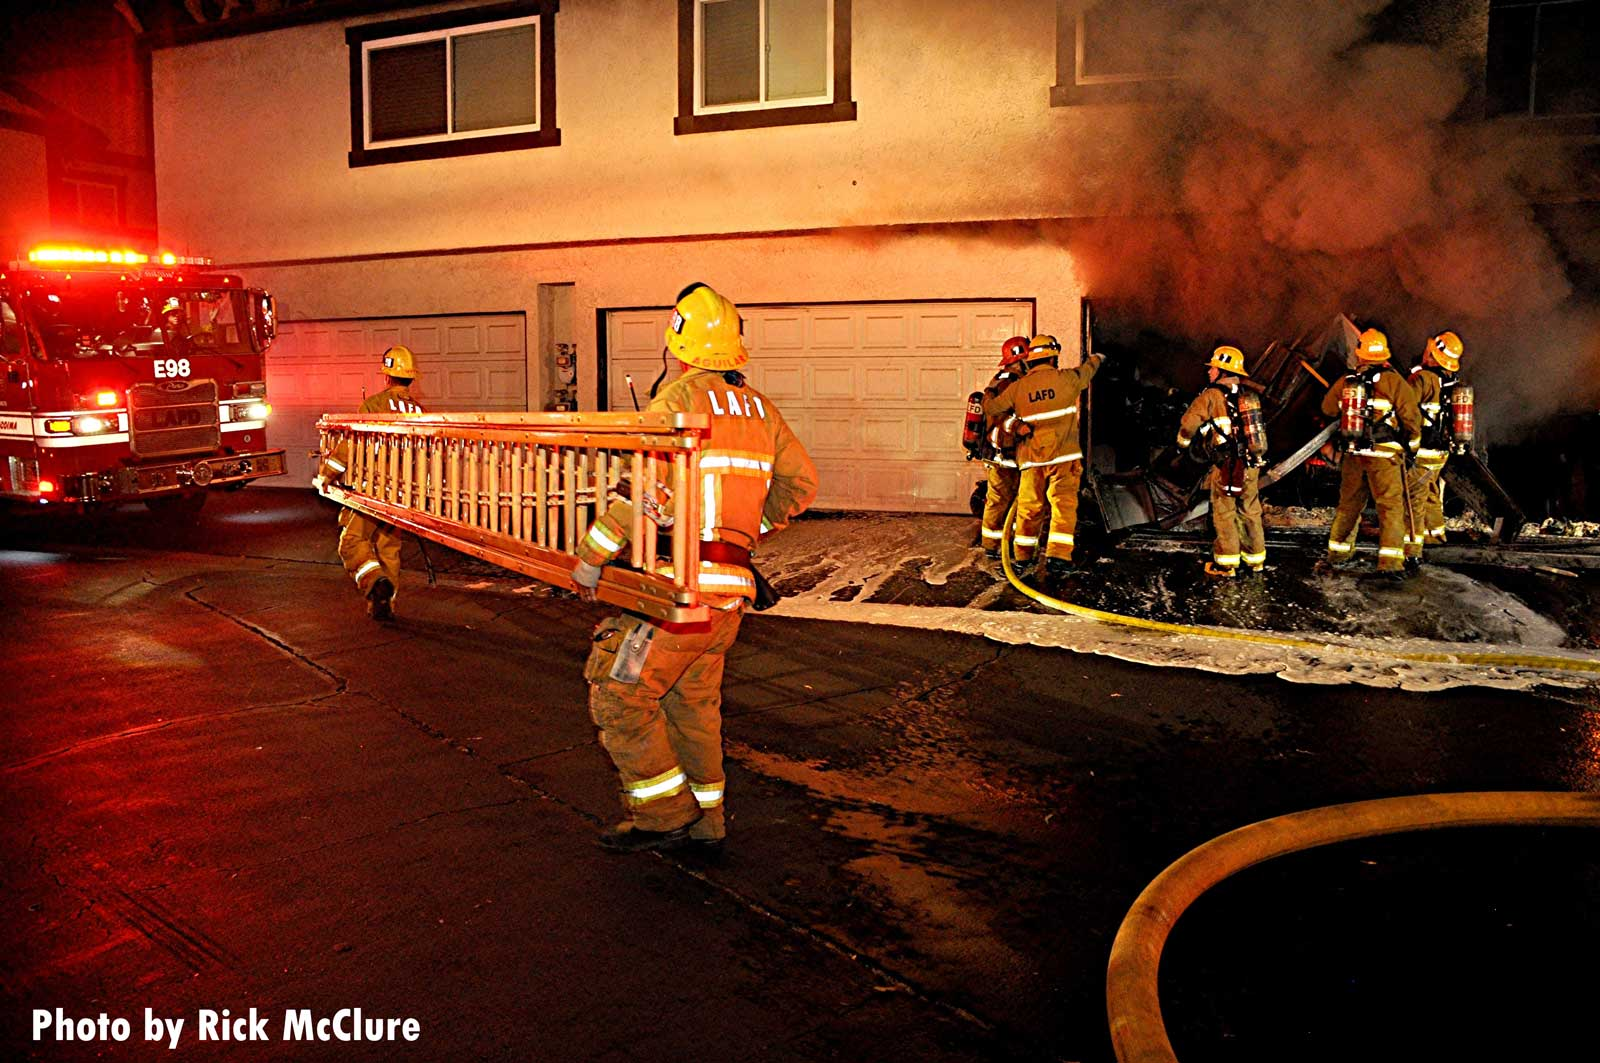 Firefighters bring a ground ladder as other members in the background use hoseline in garage